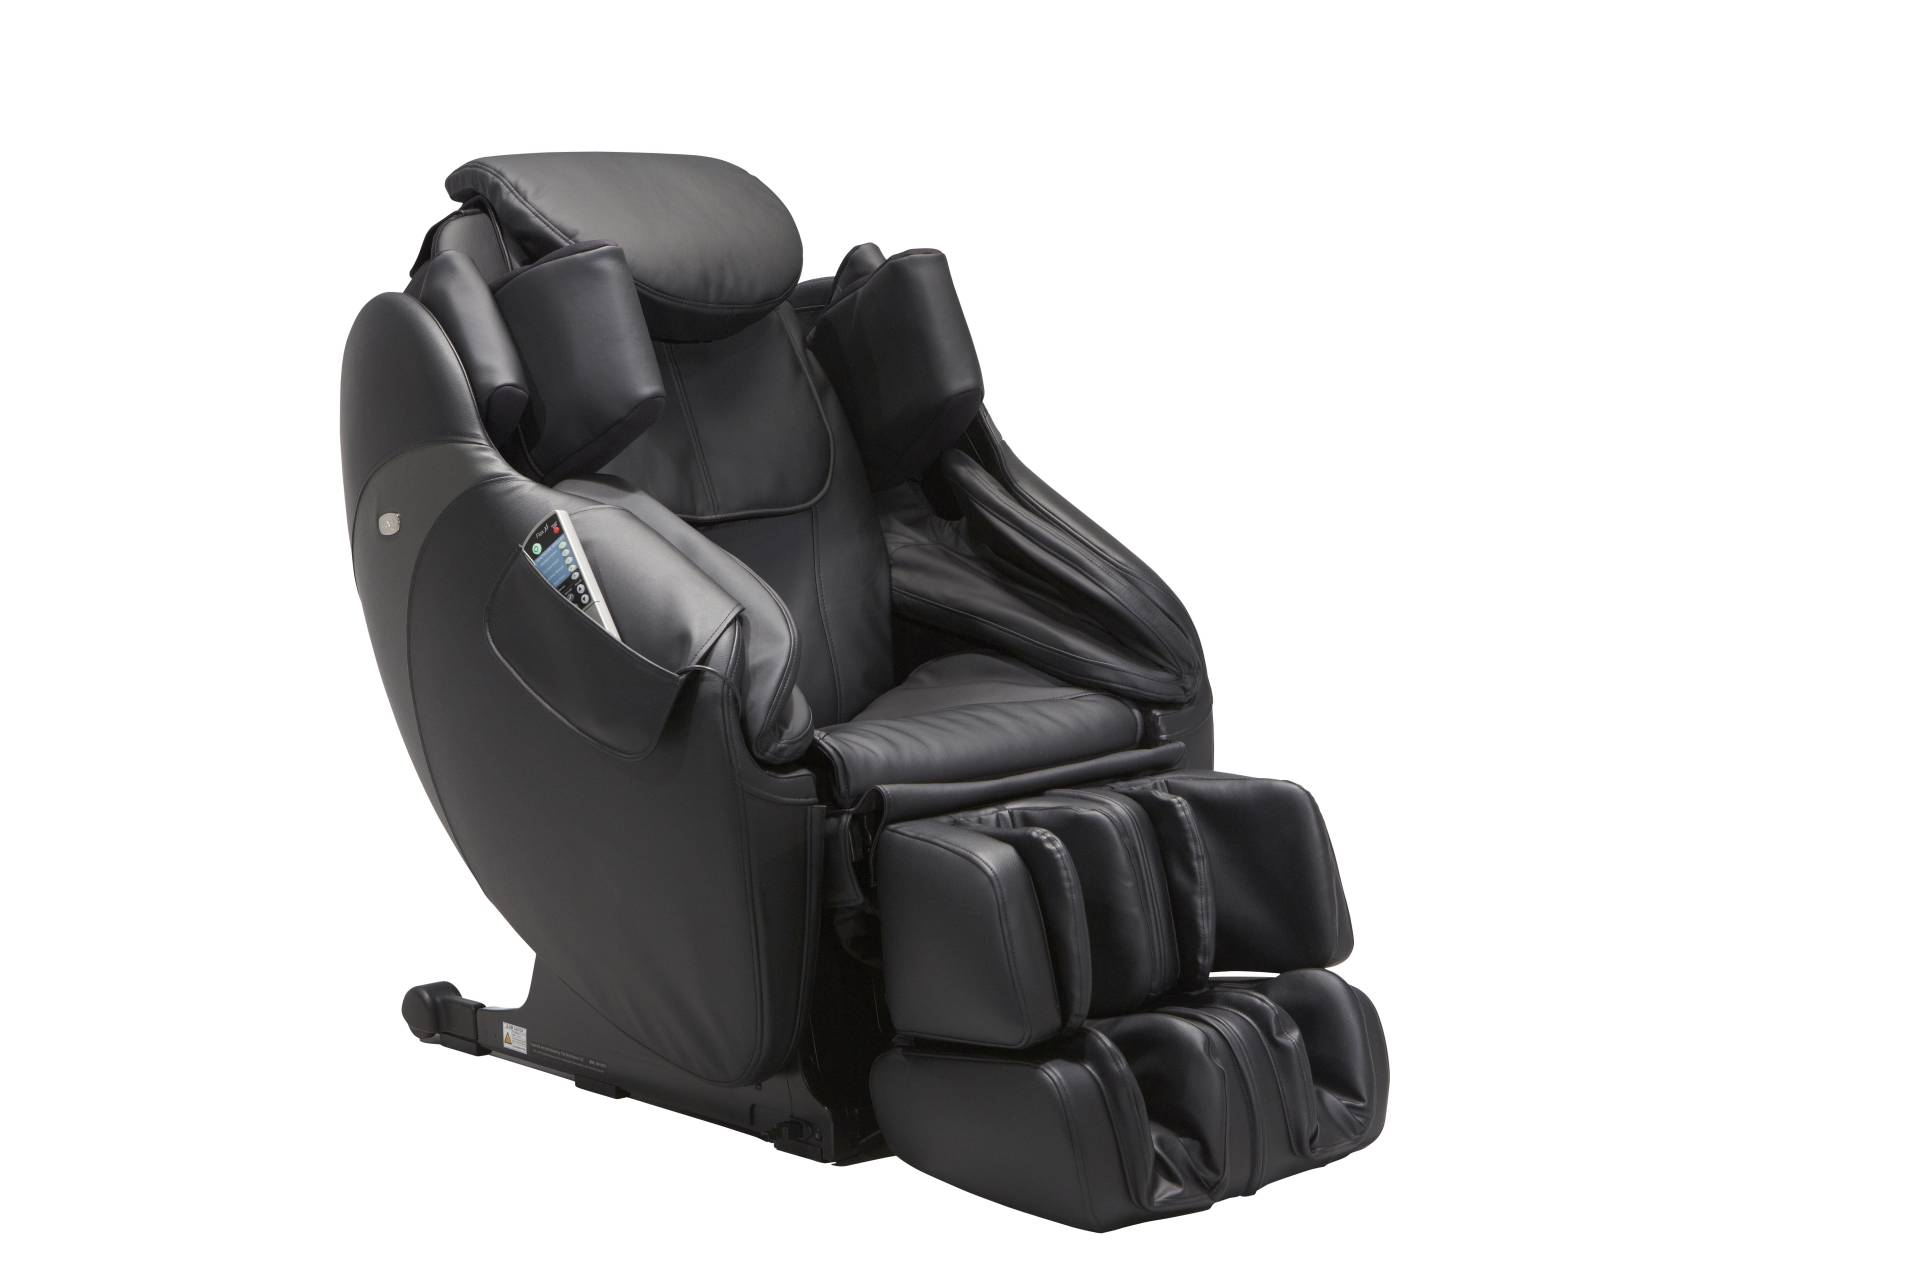 Inada 3s Medical Massage Chair Australia Inada Massage